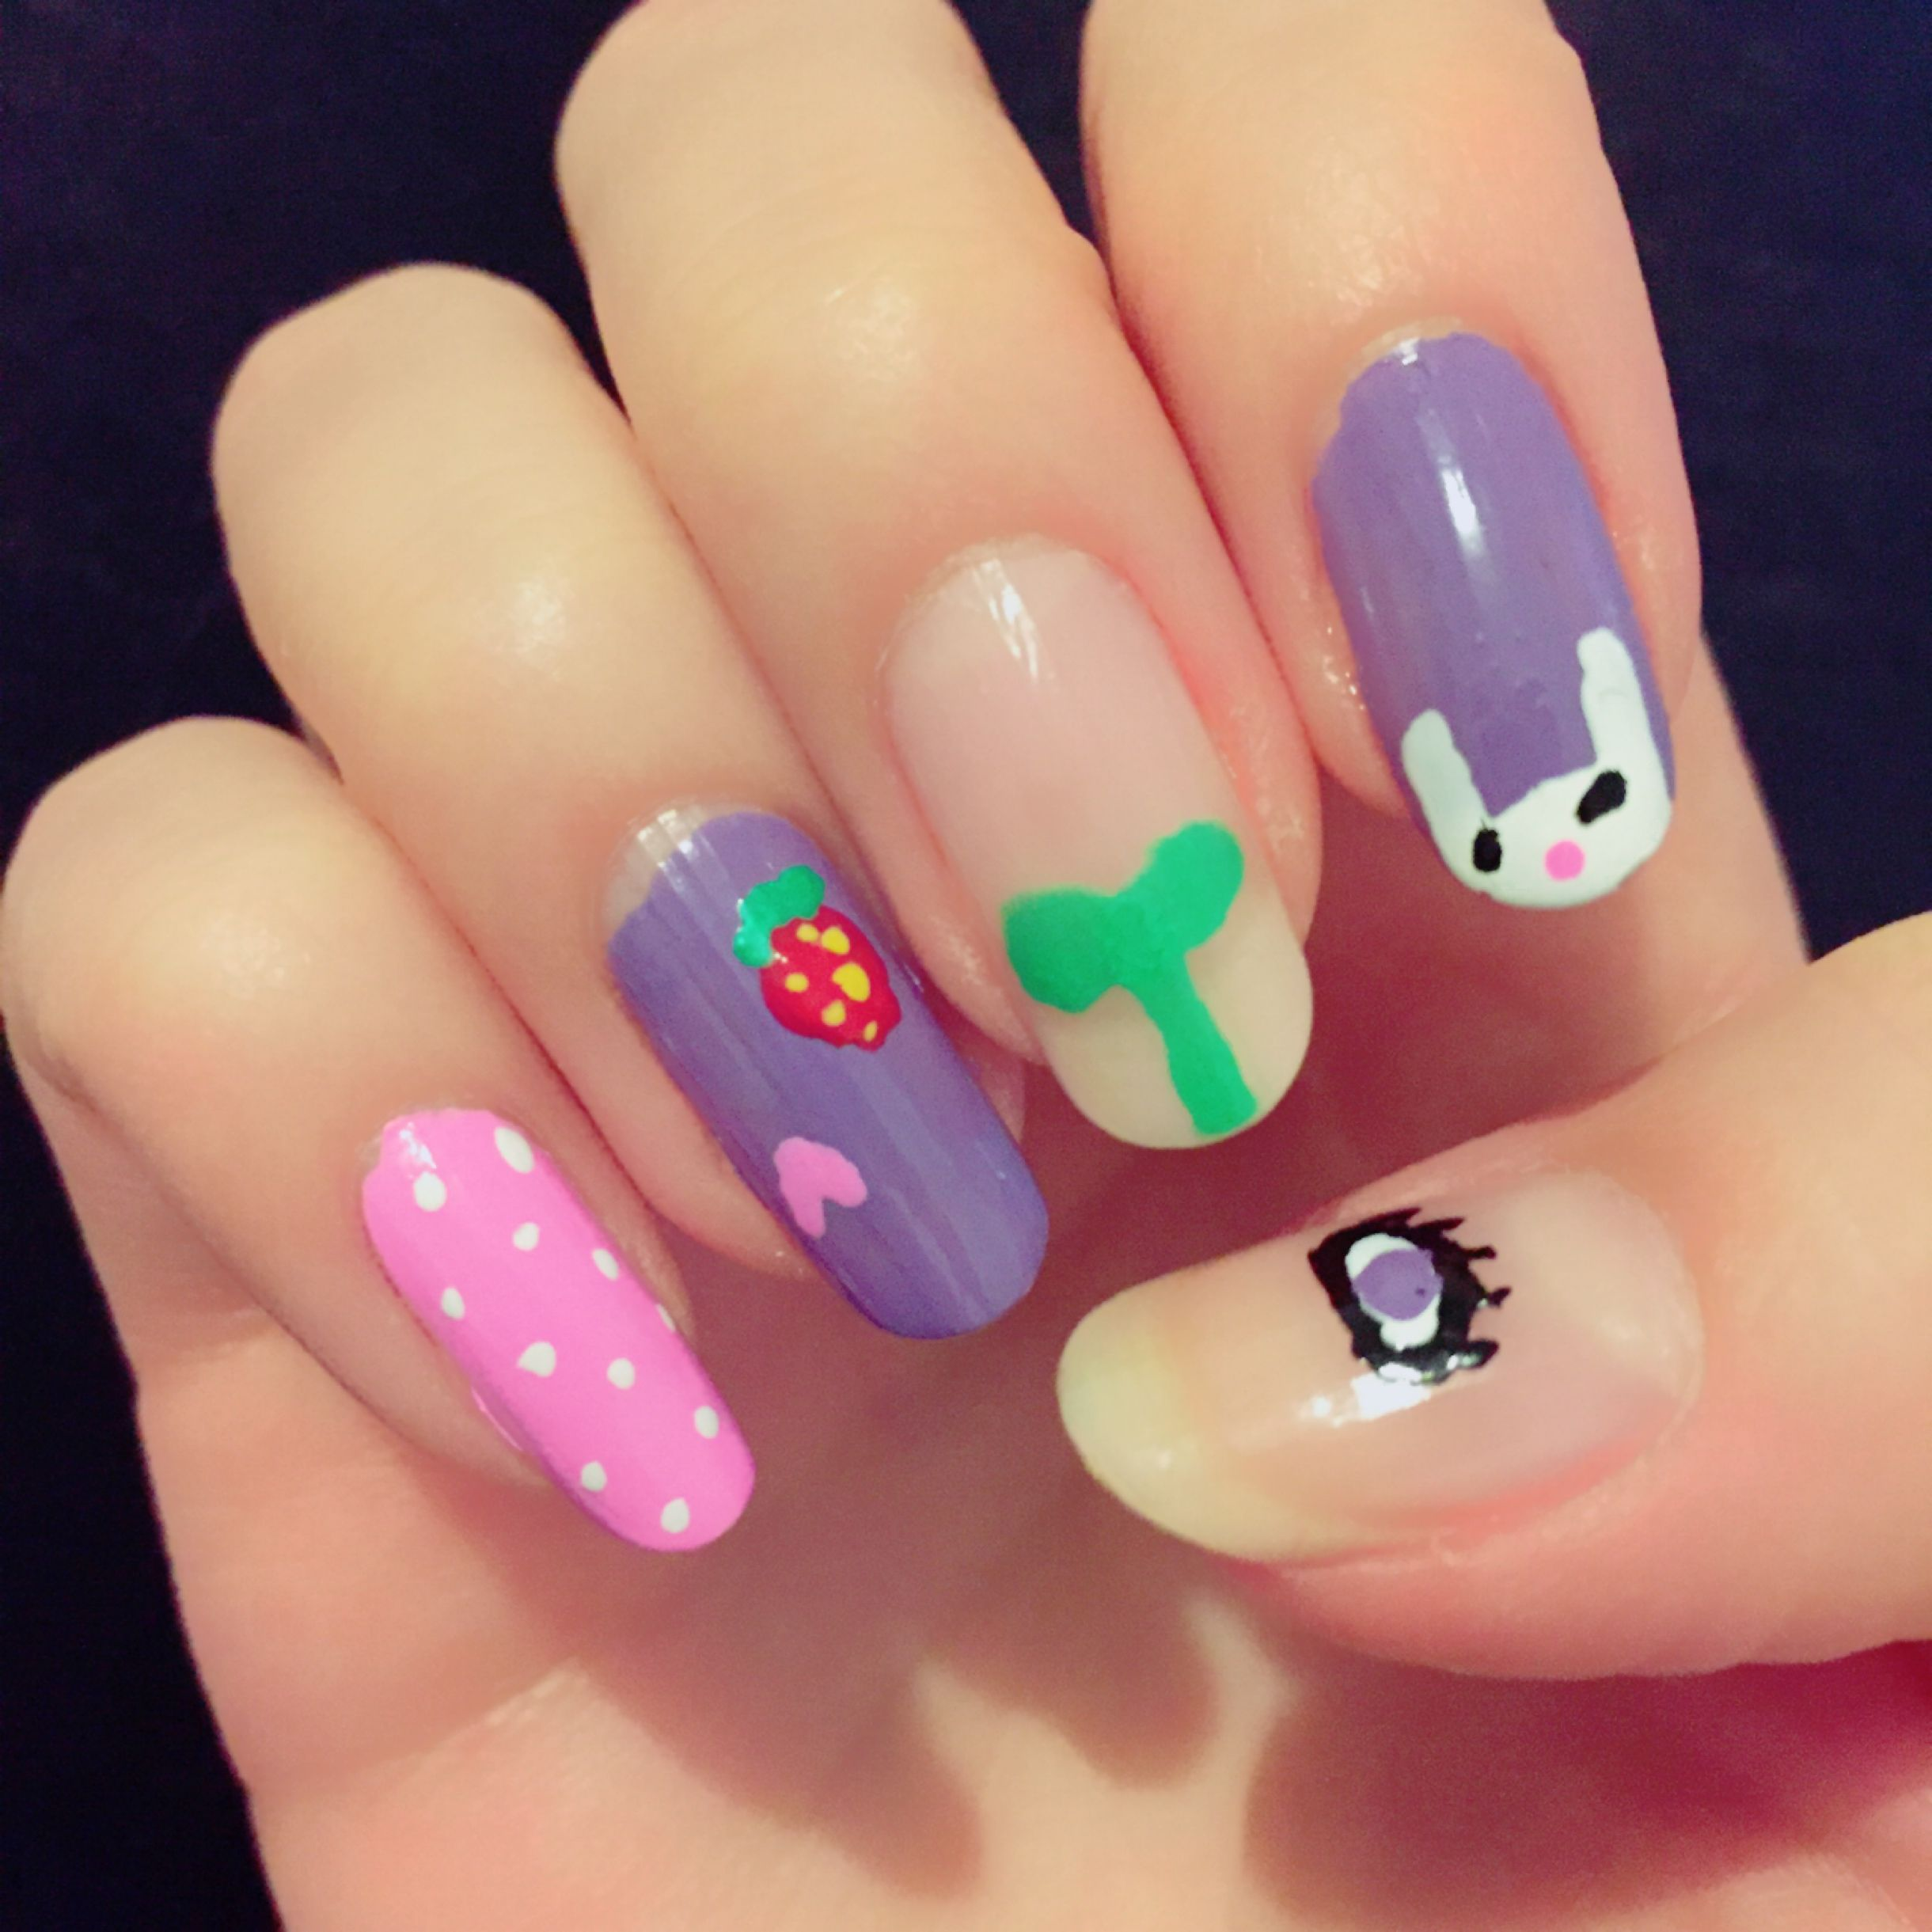 Nail art inspired by Ultra Violet, a Yume Nikki fangame | My nails ...